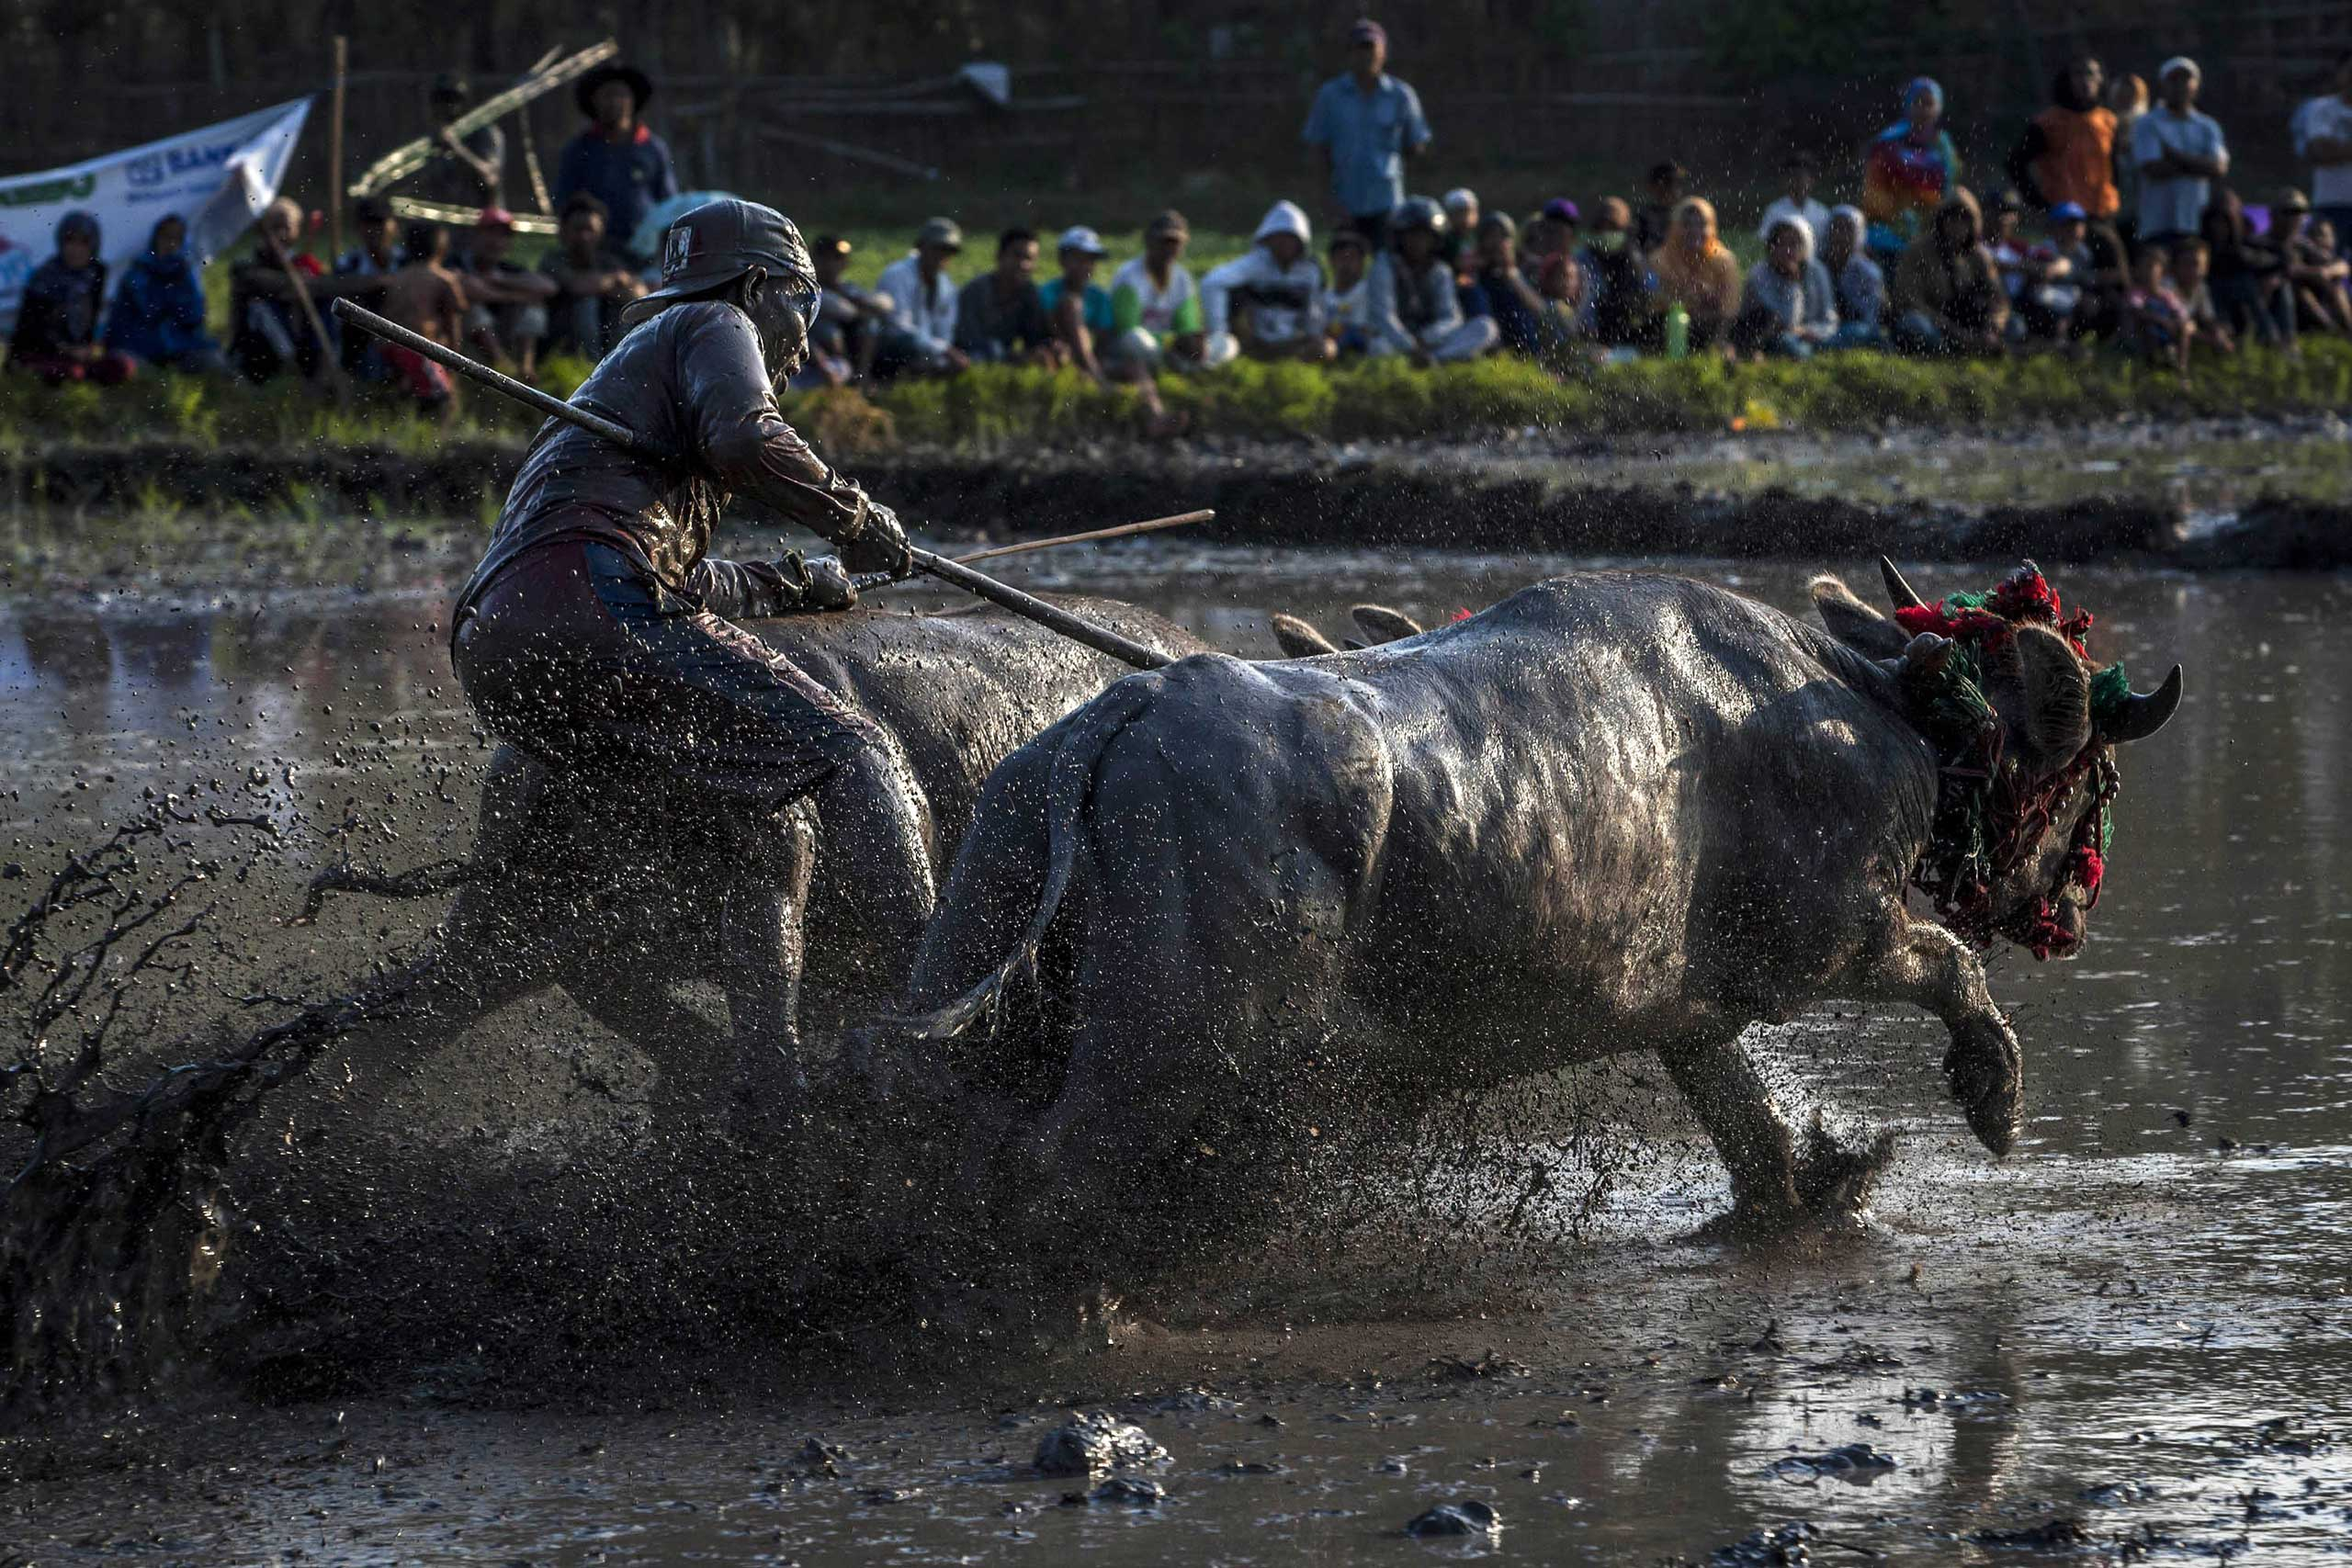 Sept. 30, 2014.  A jockey spurs the buffalos as they race during Barapan Kebo or buffalo races as part of the Moyo festival in Sumbawa Island, West Nusa Tenggara, Indonesia.